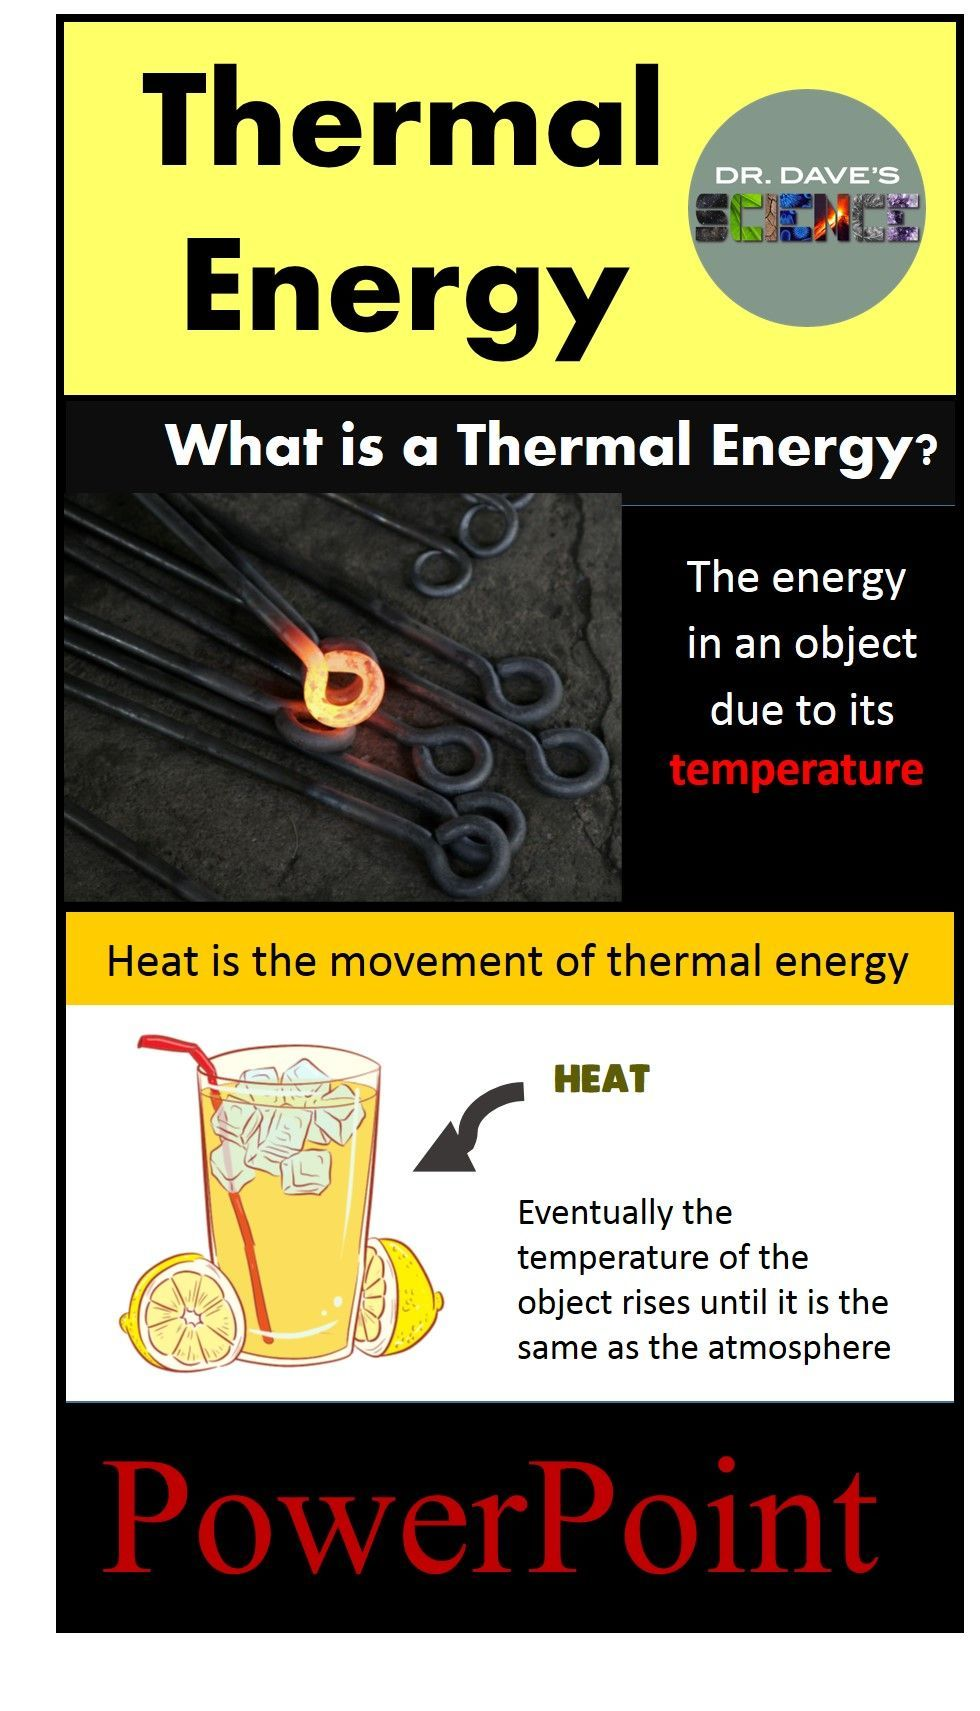 Thermal Energy PowerPoint Physical Science Thermal